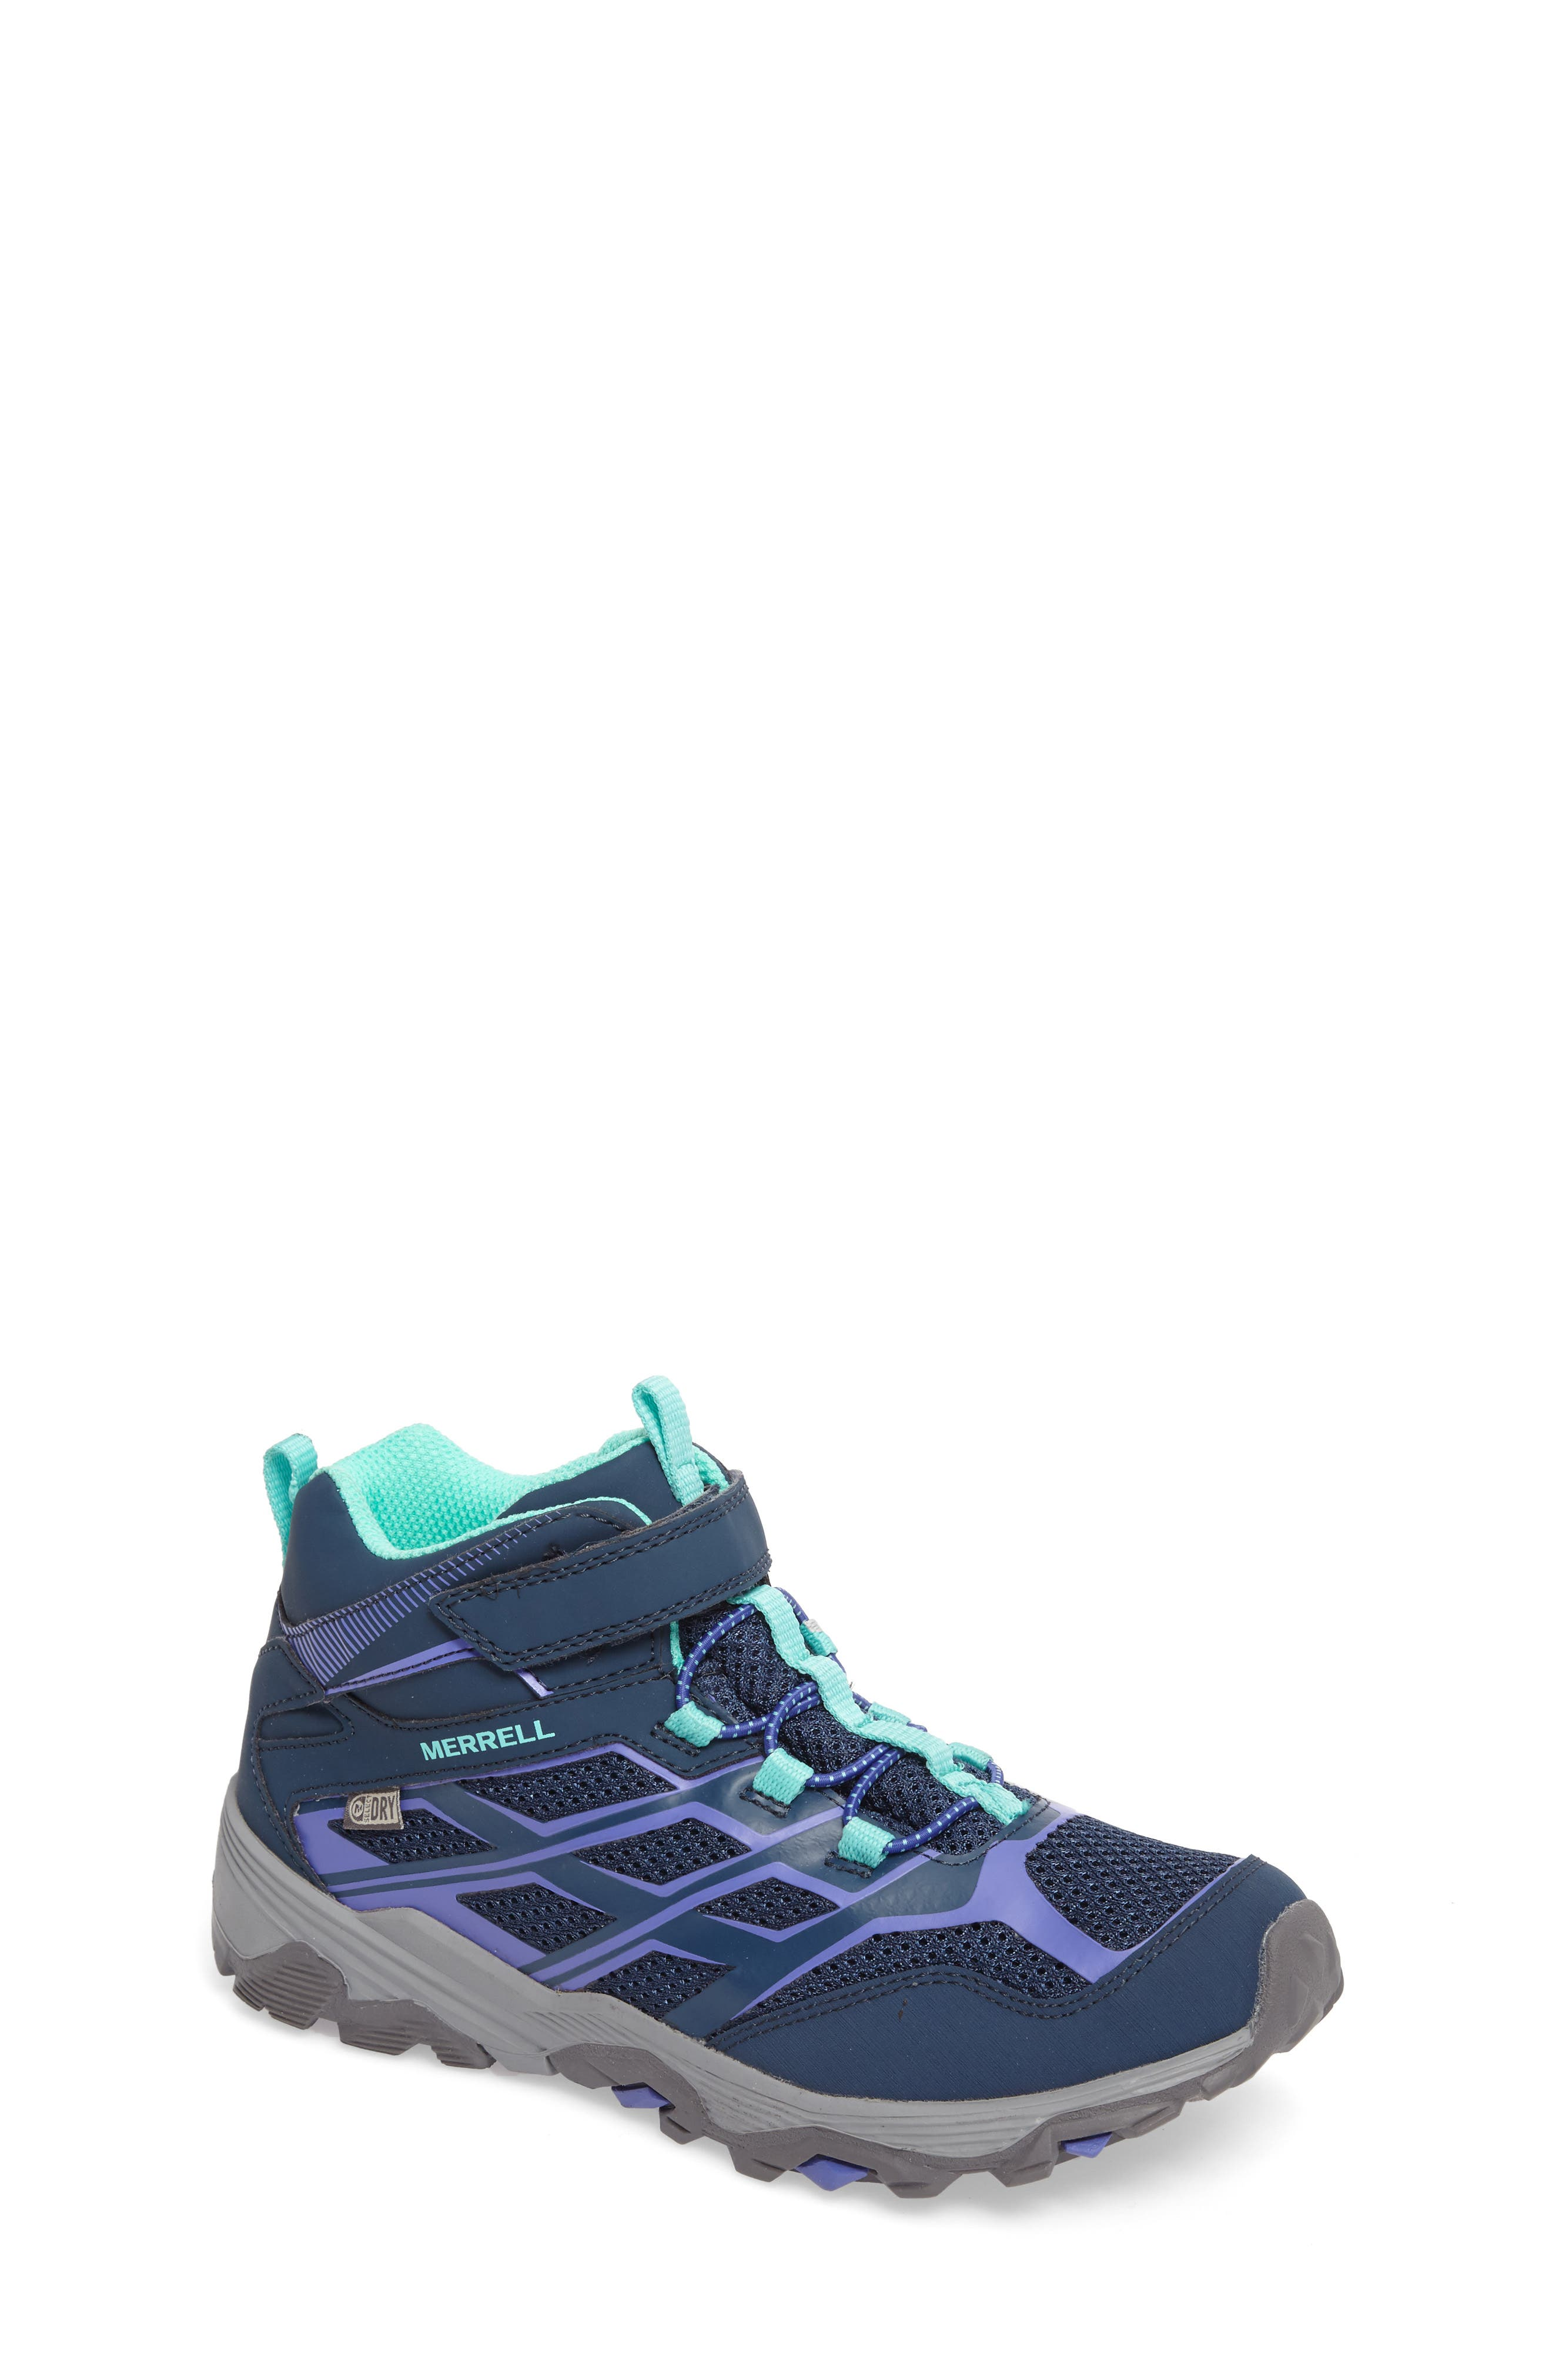 Moab FST Polar Mid Insulated Waterproof Sneaker Boot,                             Main thumbnail 1, color,                             410